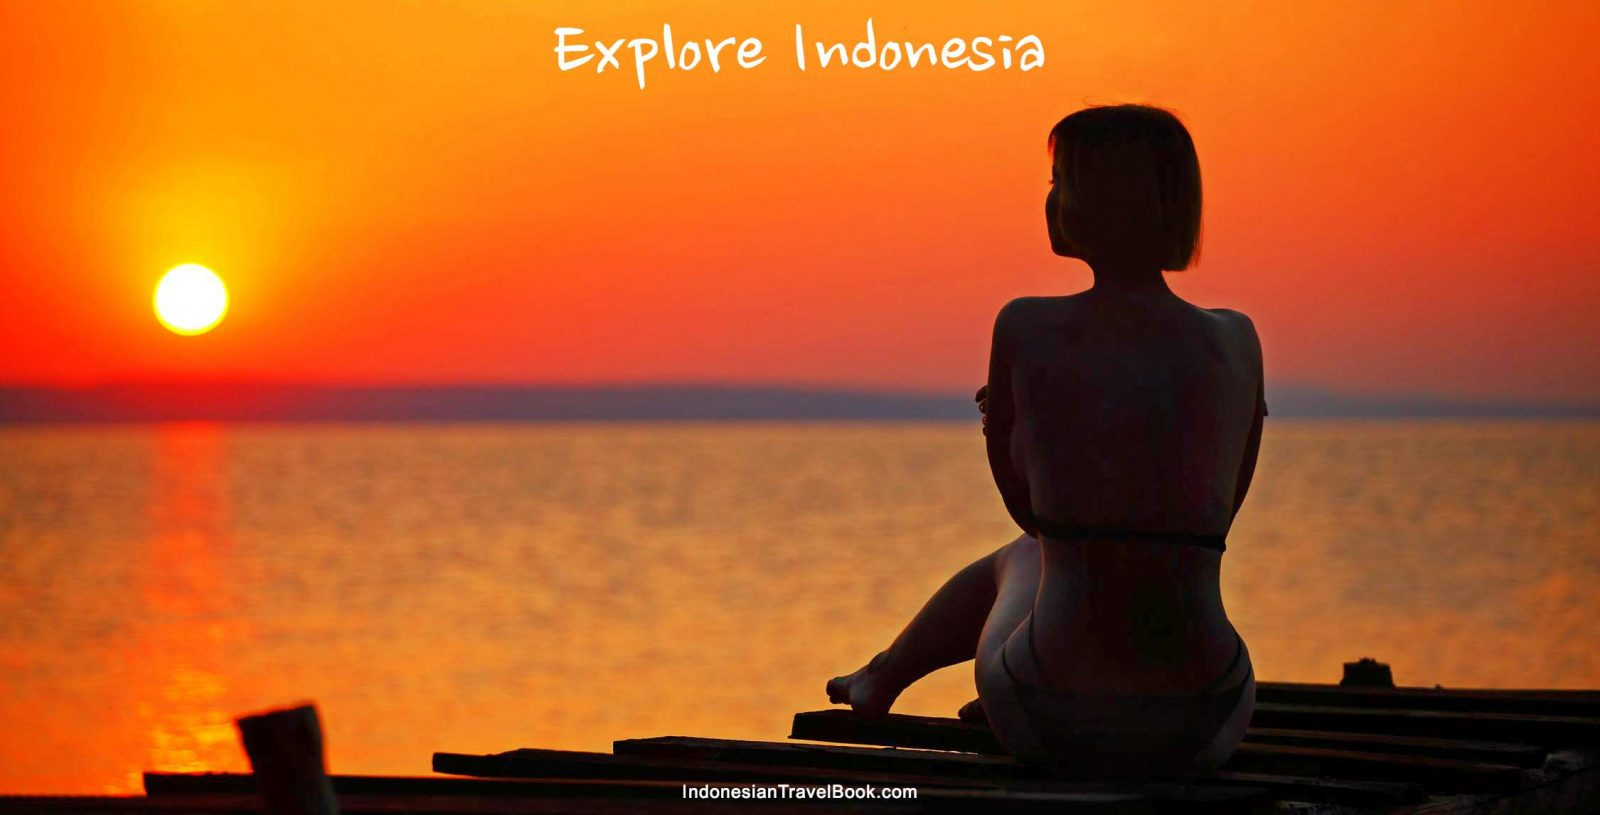 Indonesia Rethinks Plan To Lure Tourists